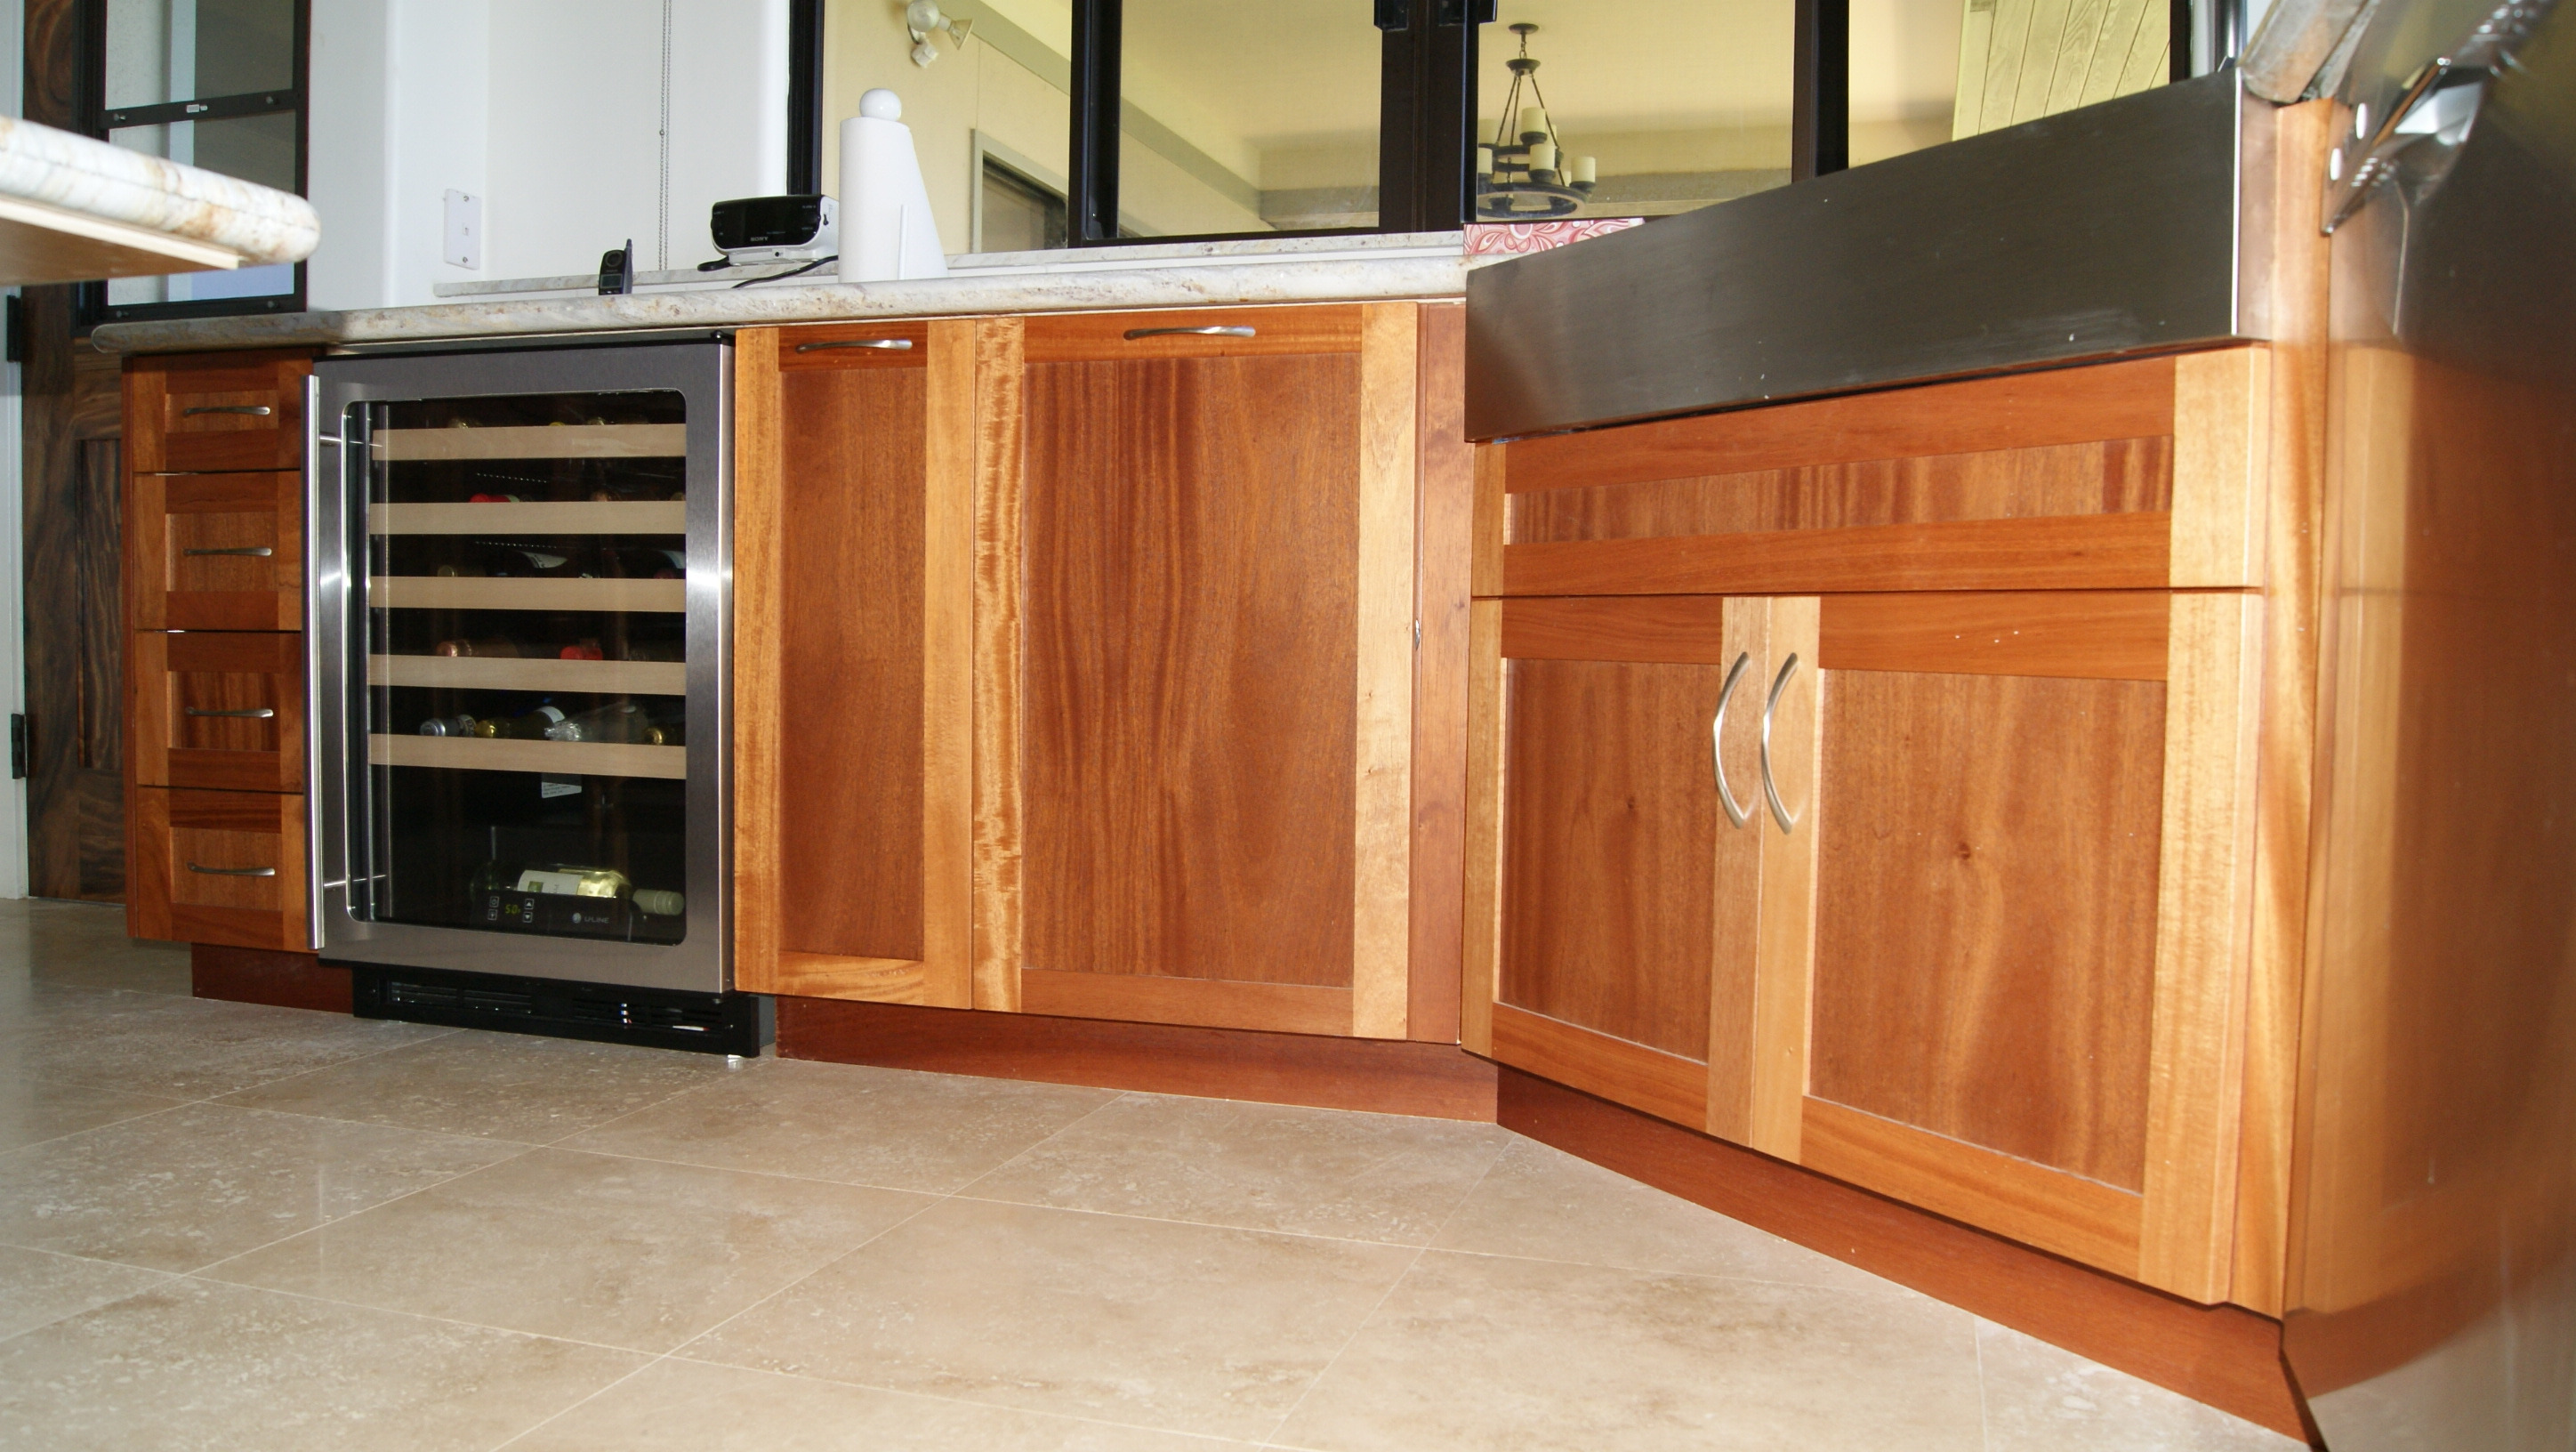 Kitchen gallery north shore wood works for Mahogany kitchen designs